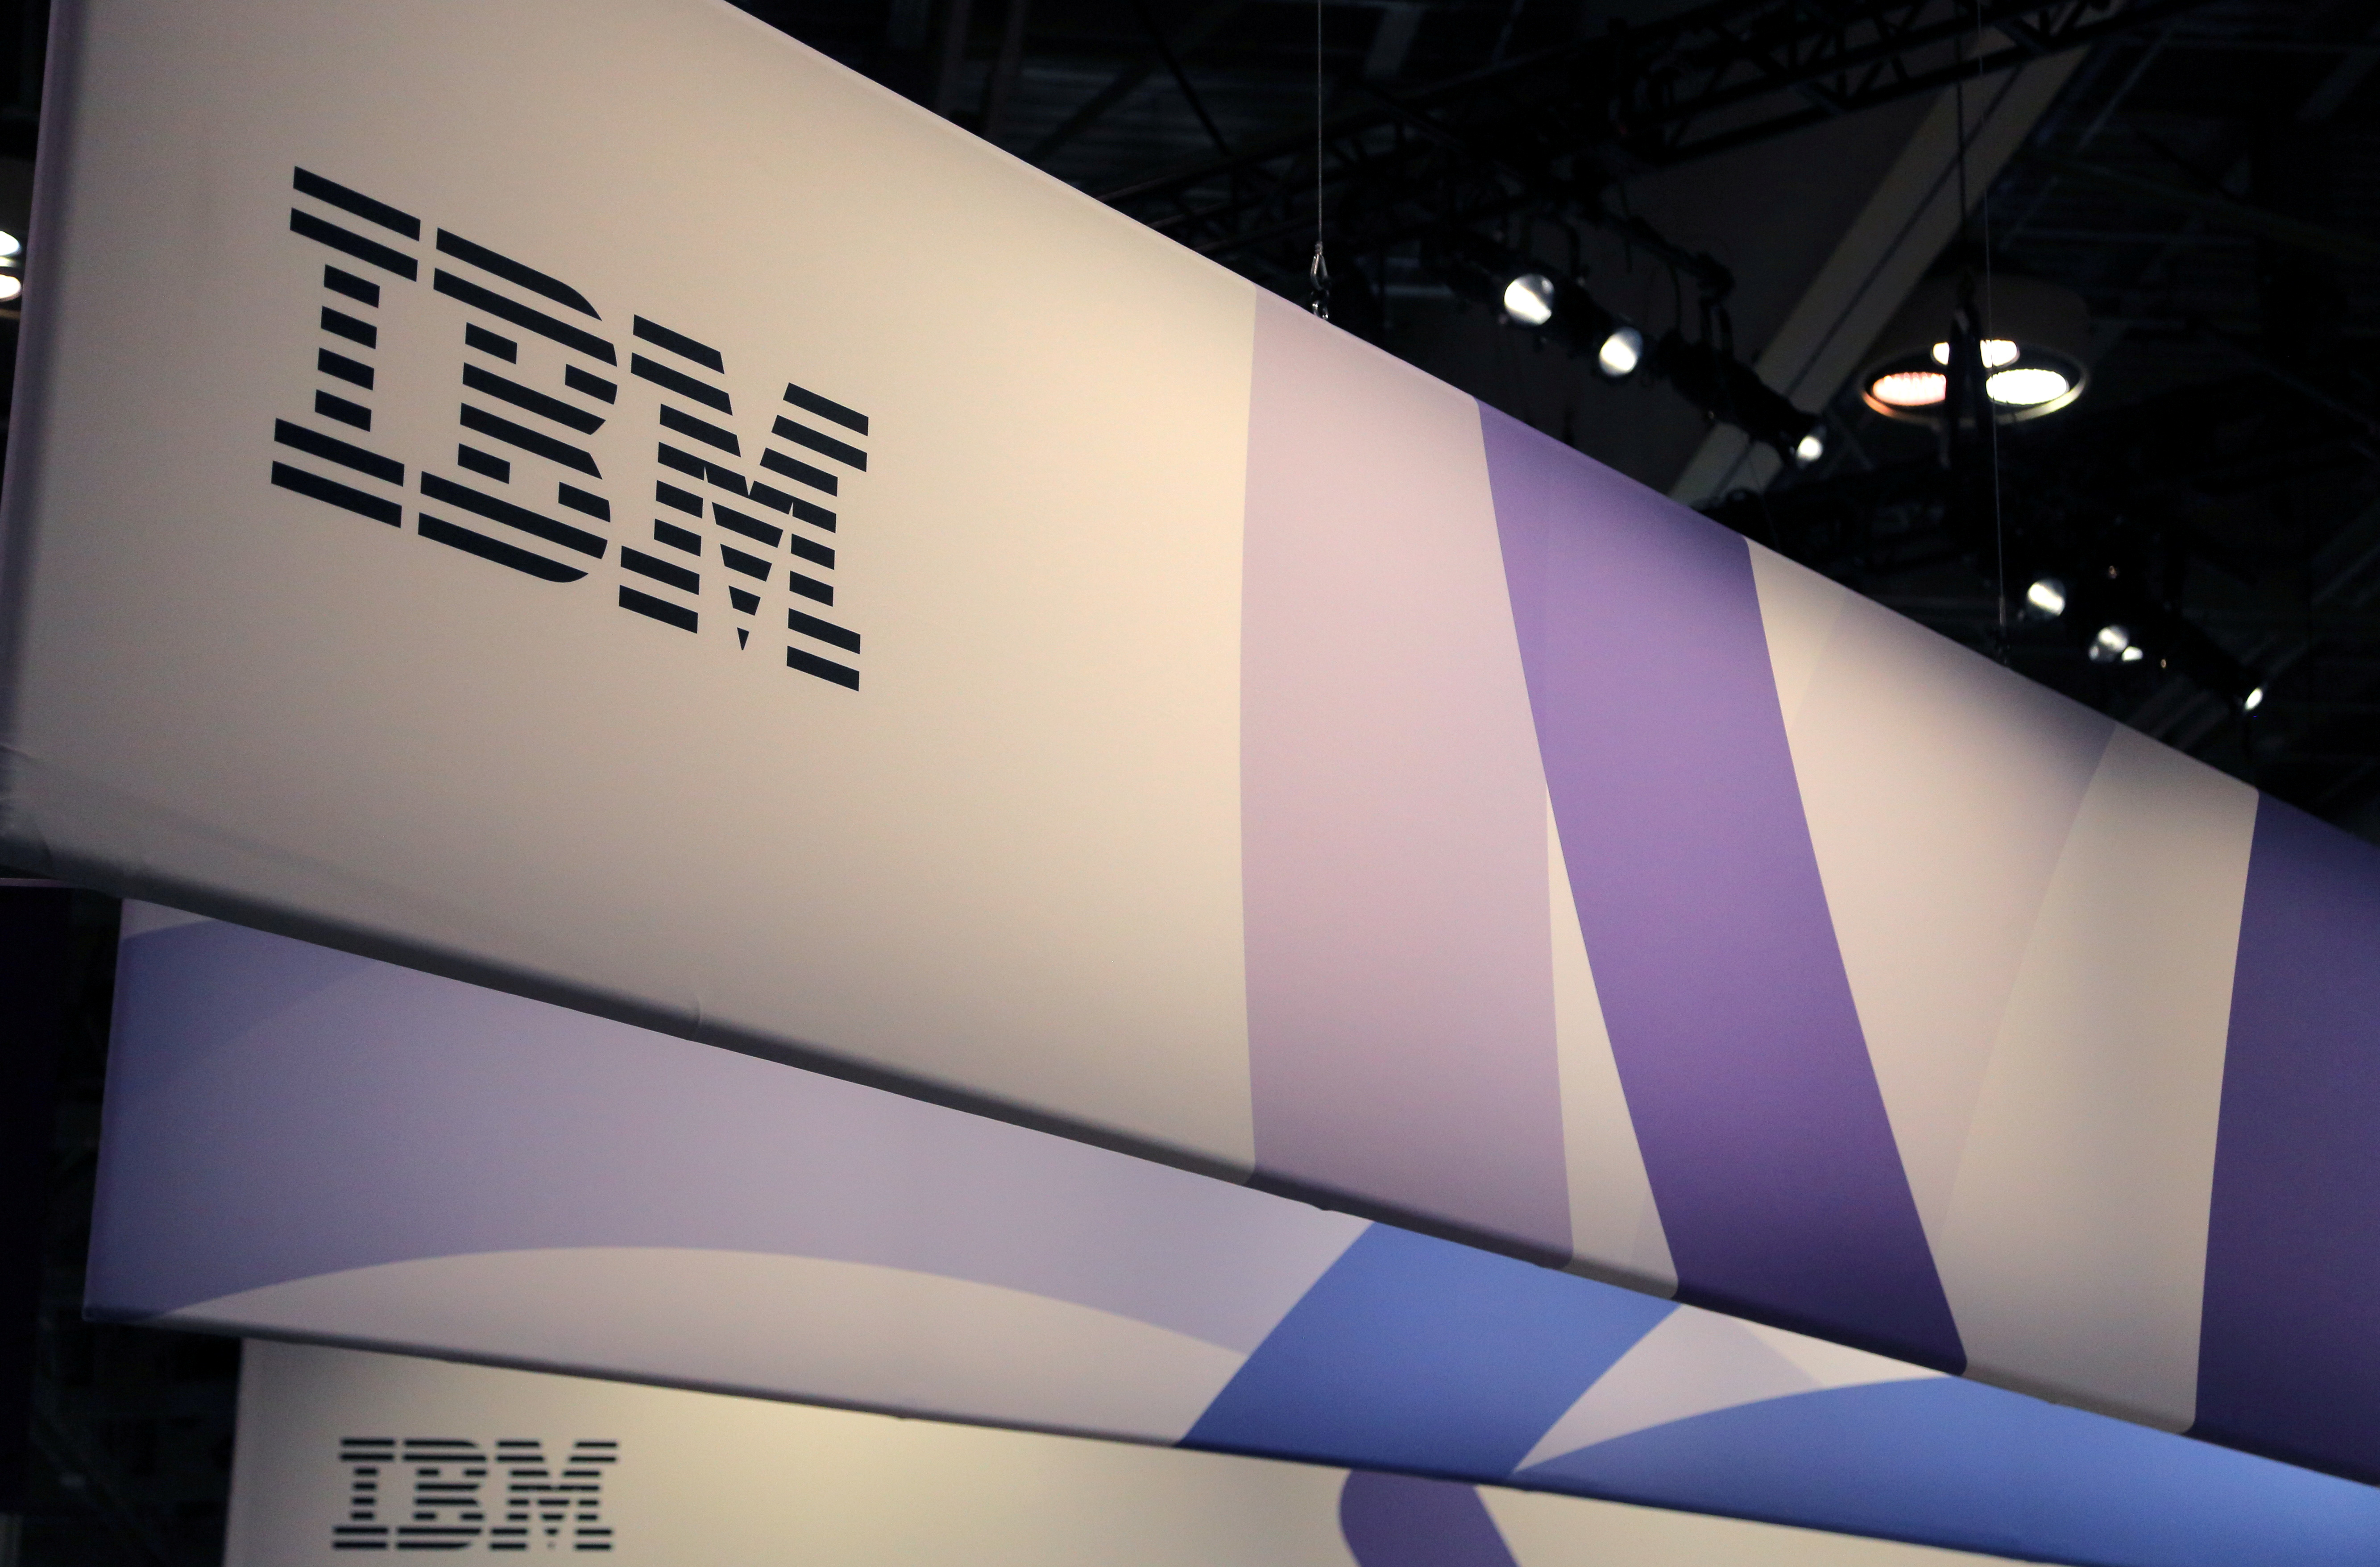 The logo for IBM is seen at the SIBOS banking and financial conference in Toronto, Ontario, Canada October 19, 2017.   REUTERS/Chris Helgren